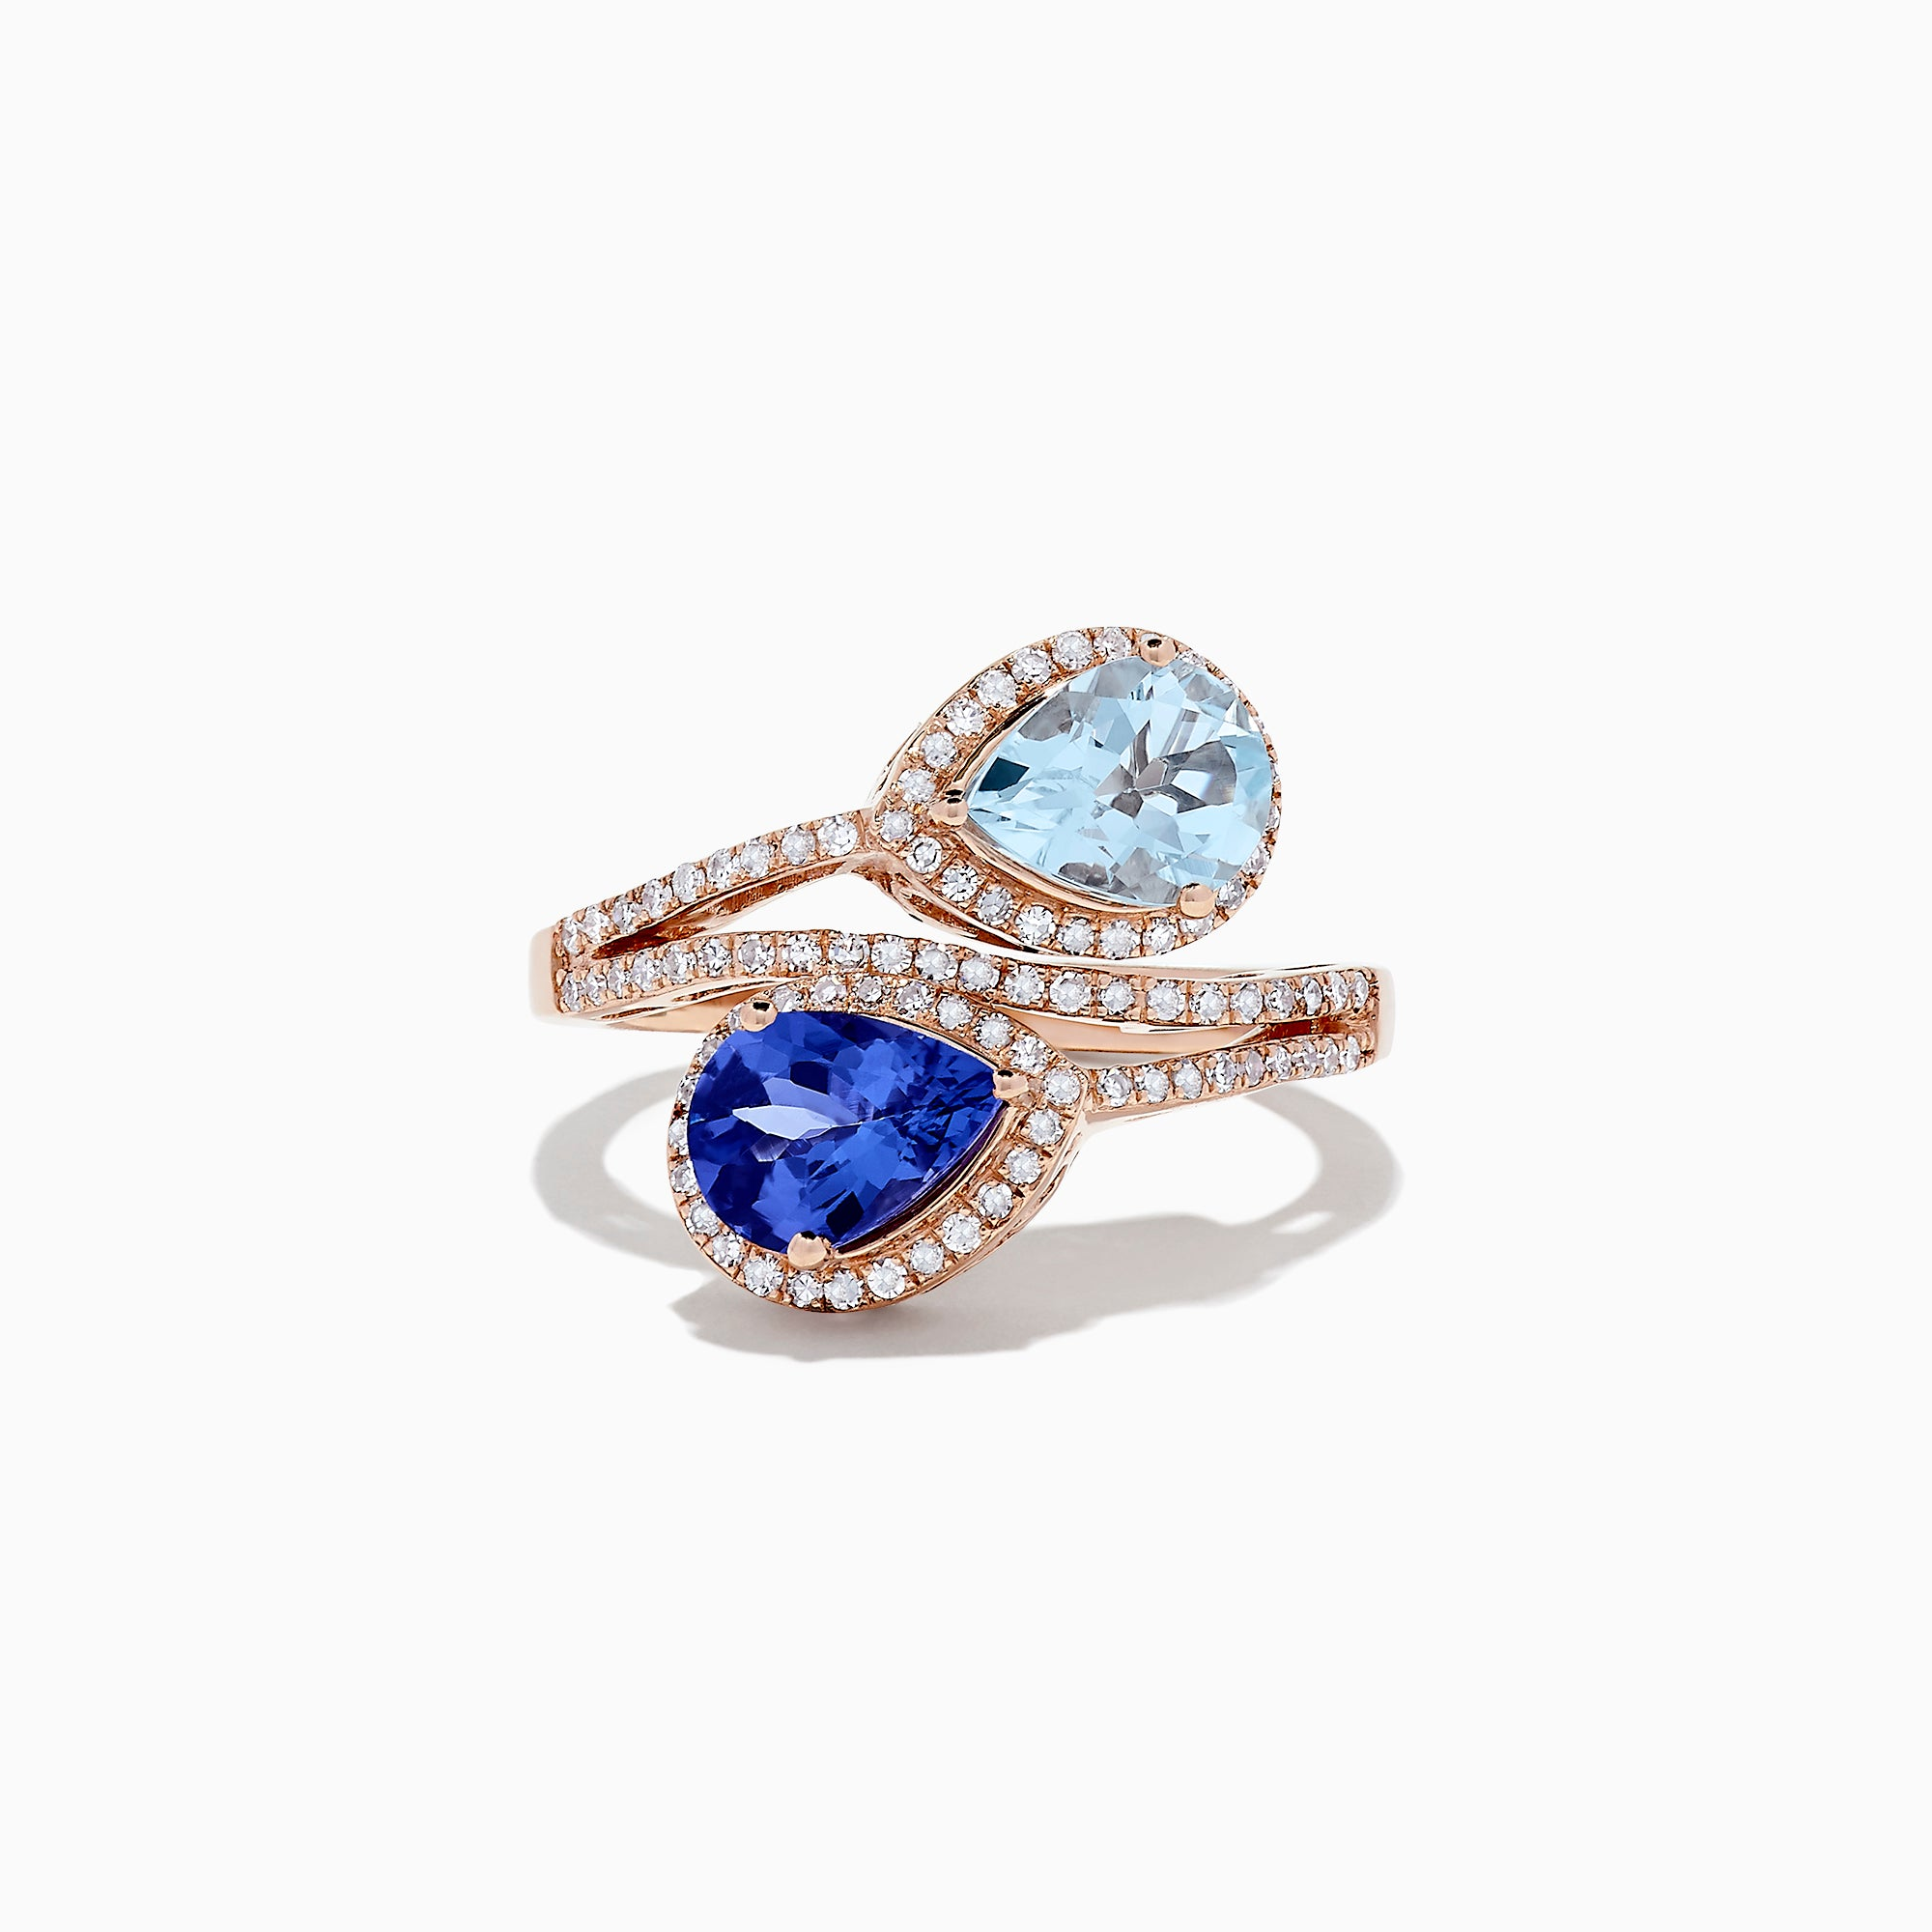 Effy 14K Rose Gold Tanzanite, Aquamarine and Diamond Ring, 2.34 TCW